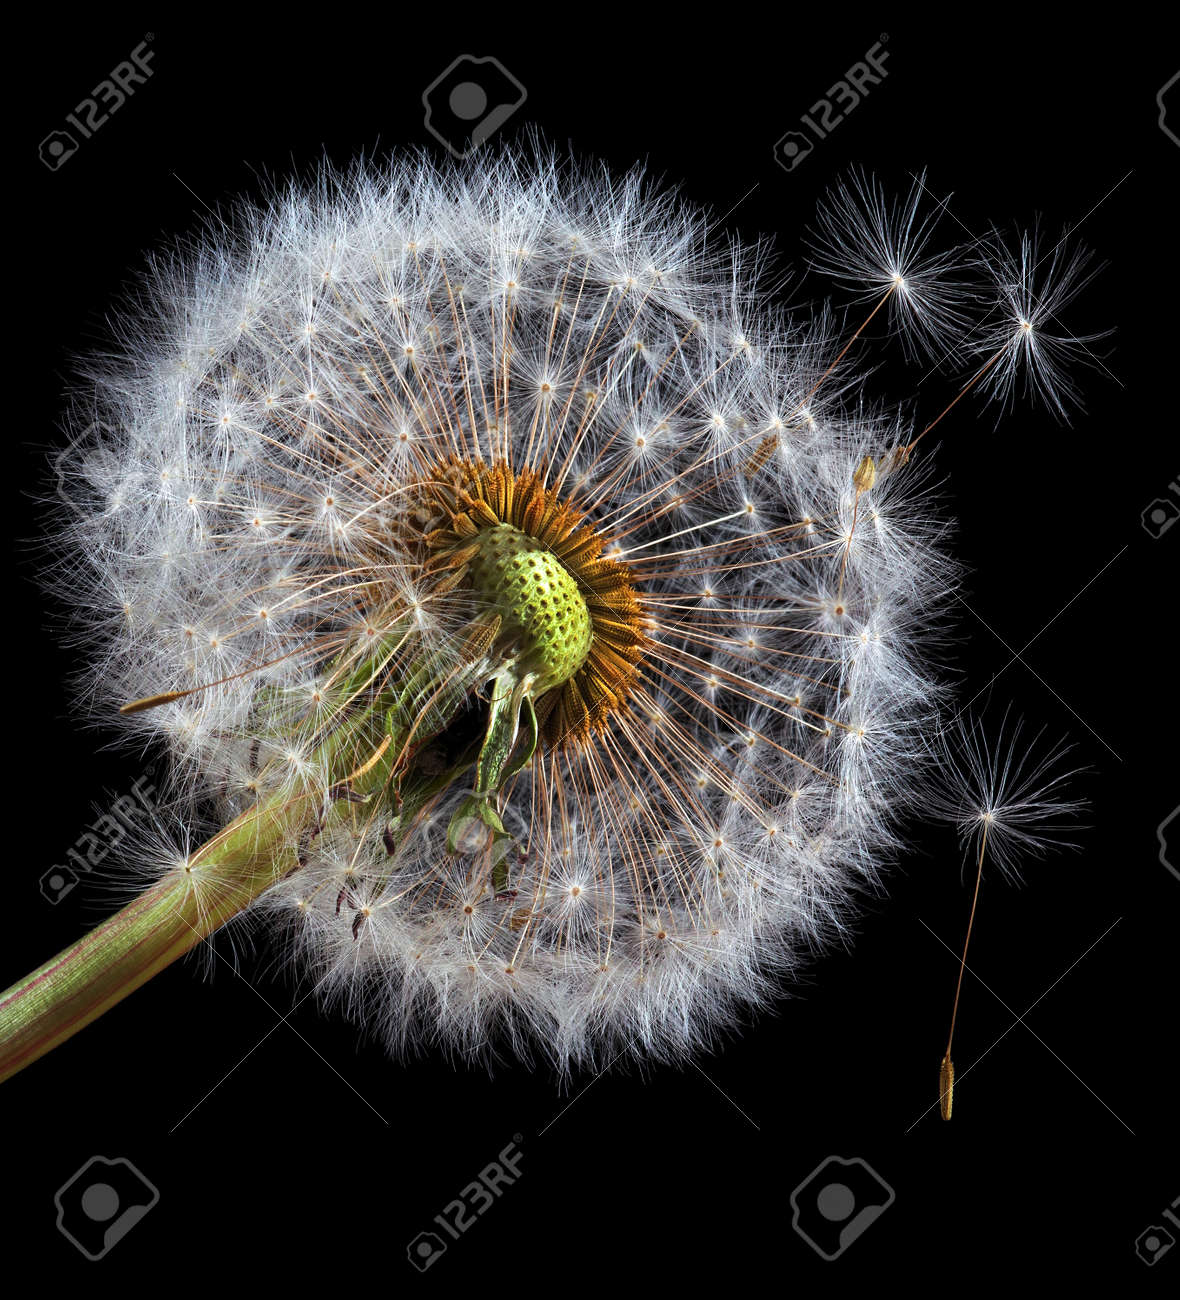 two white fluffy dandelions close up isolated on black - 169620208